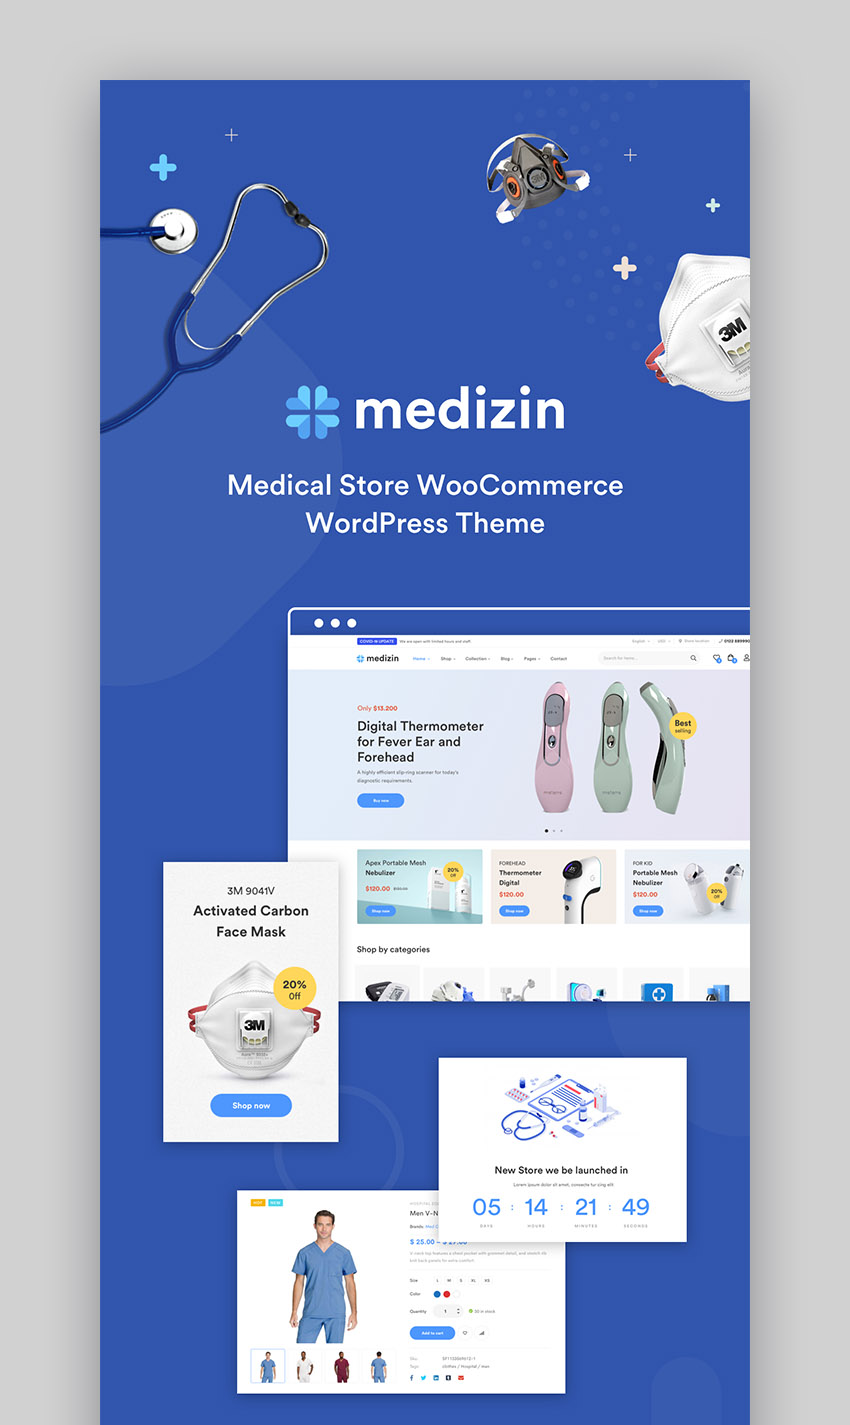 Medizin Medical Cure Health and Medical WordPress Theme